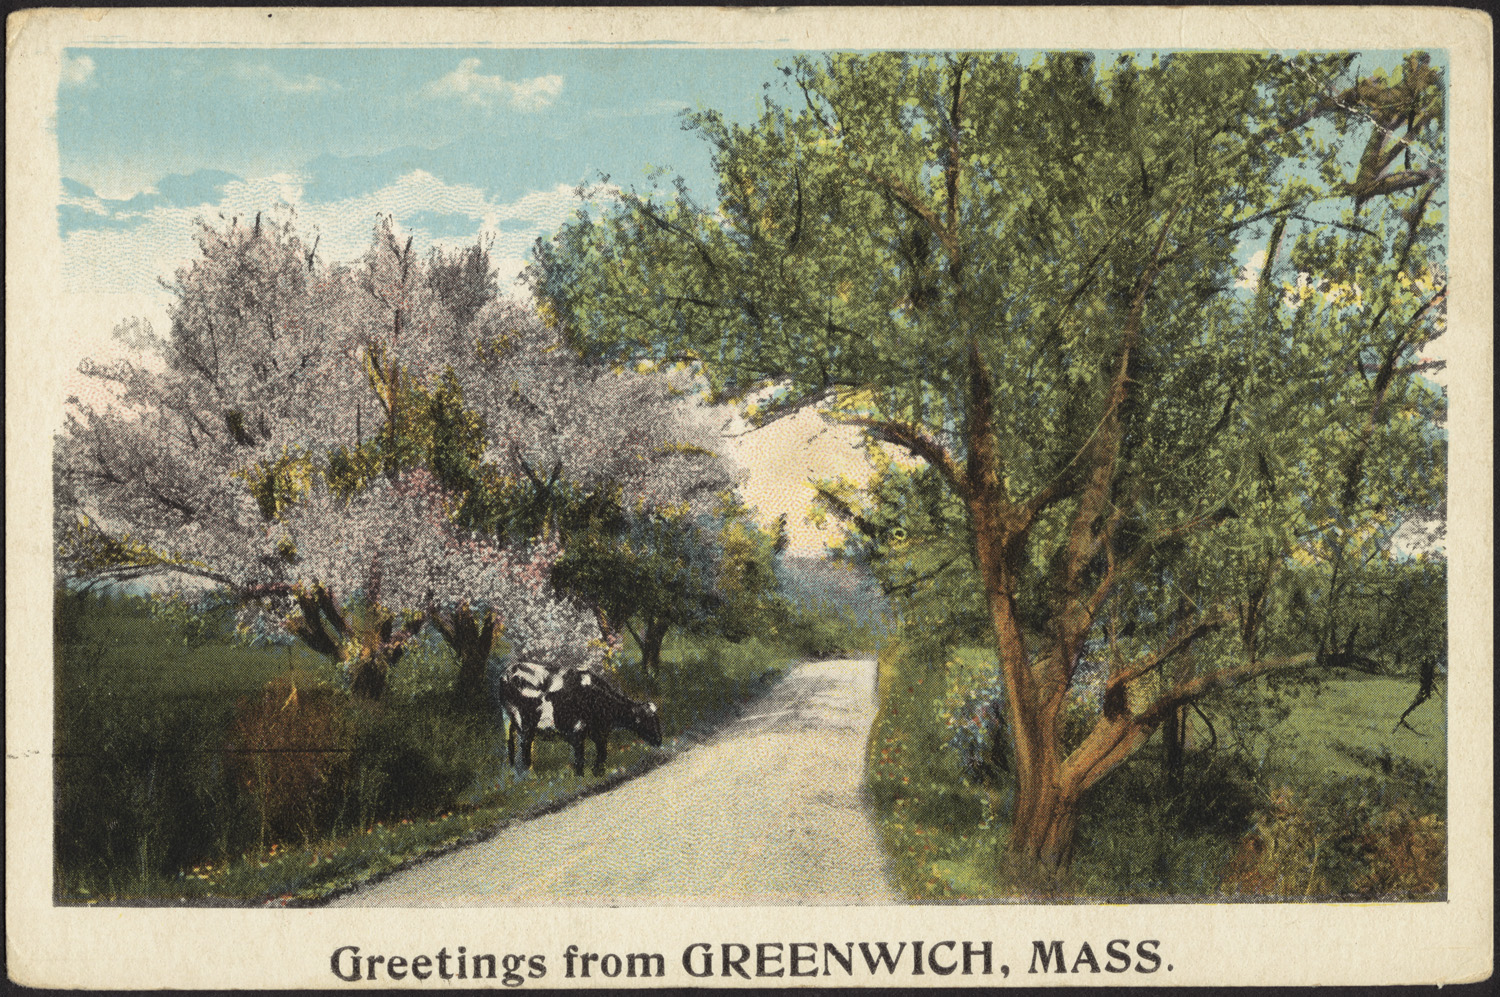 This postcard from the early 1900s depicts the bucolic community of Greenwich, Mass. – one of the four towns lost in the 1930s with the creation of the Quabbin Reservoir .